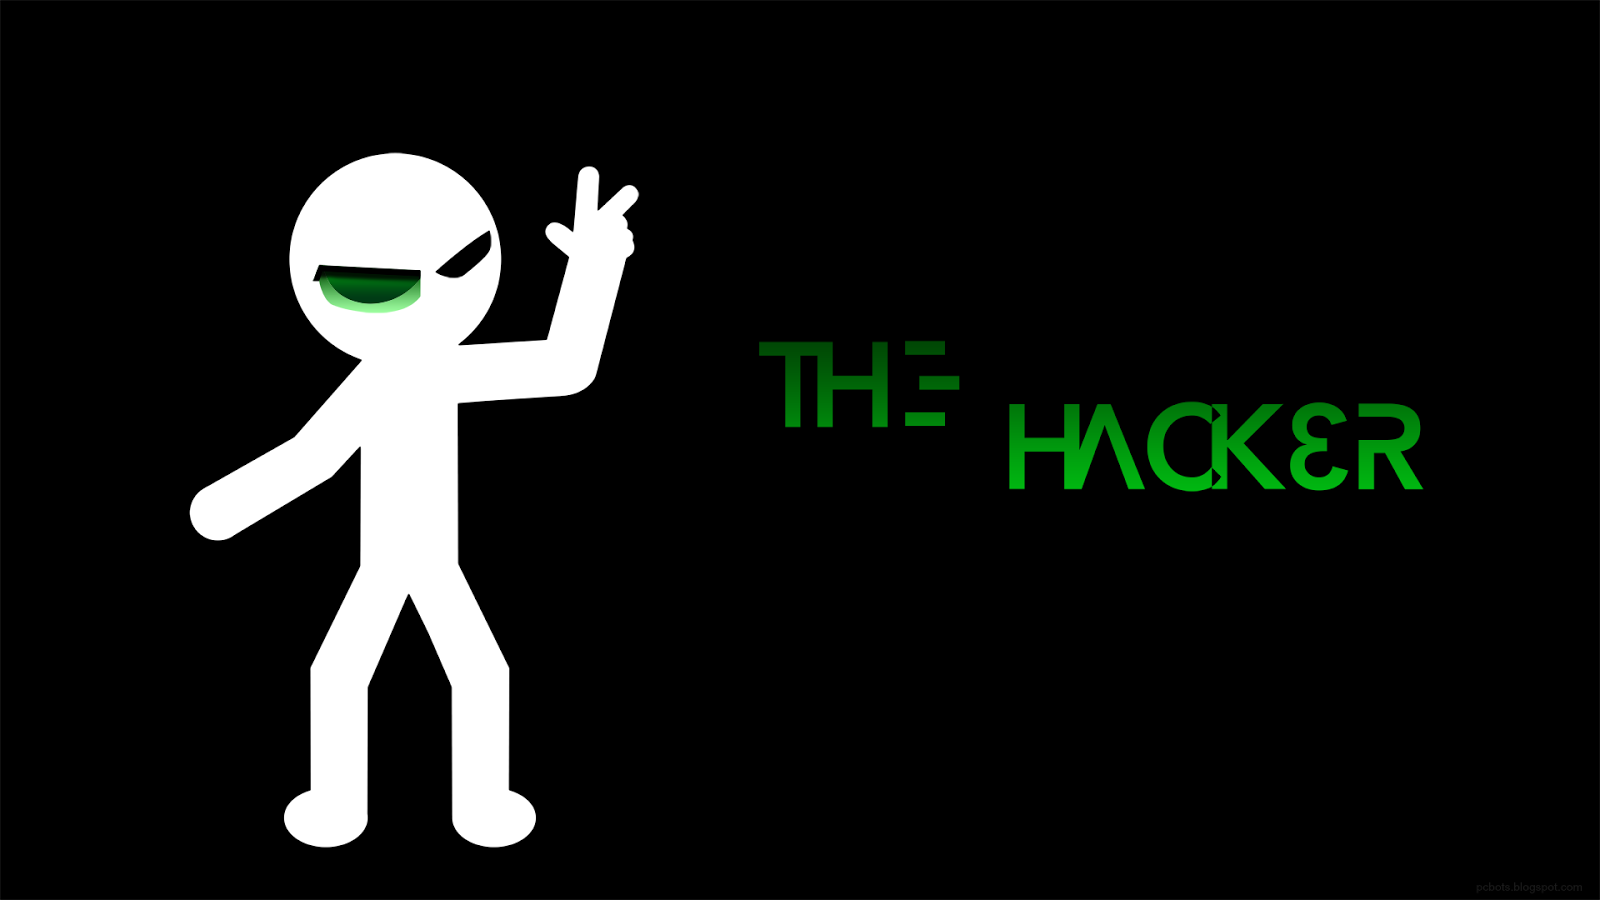 January 23, 2014, Hackers HQFX - Pack.47